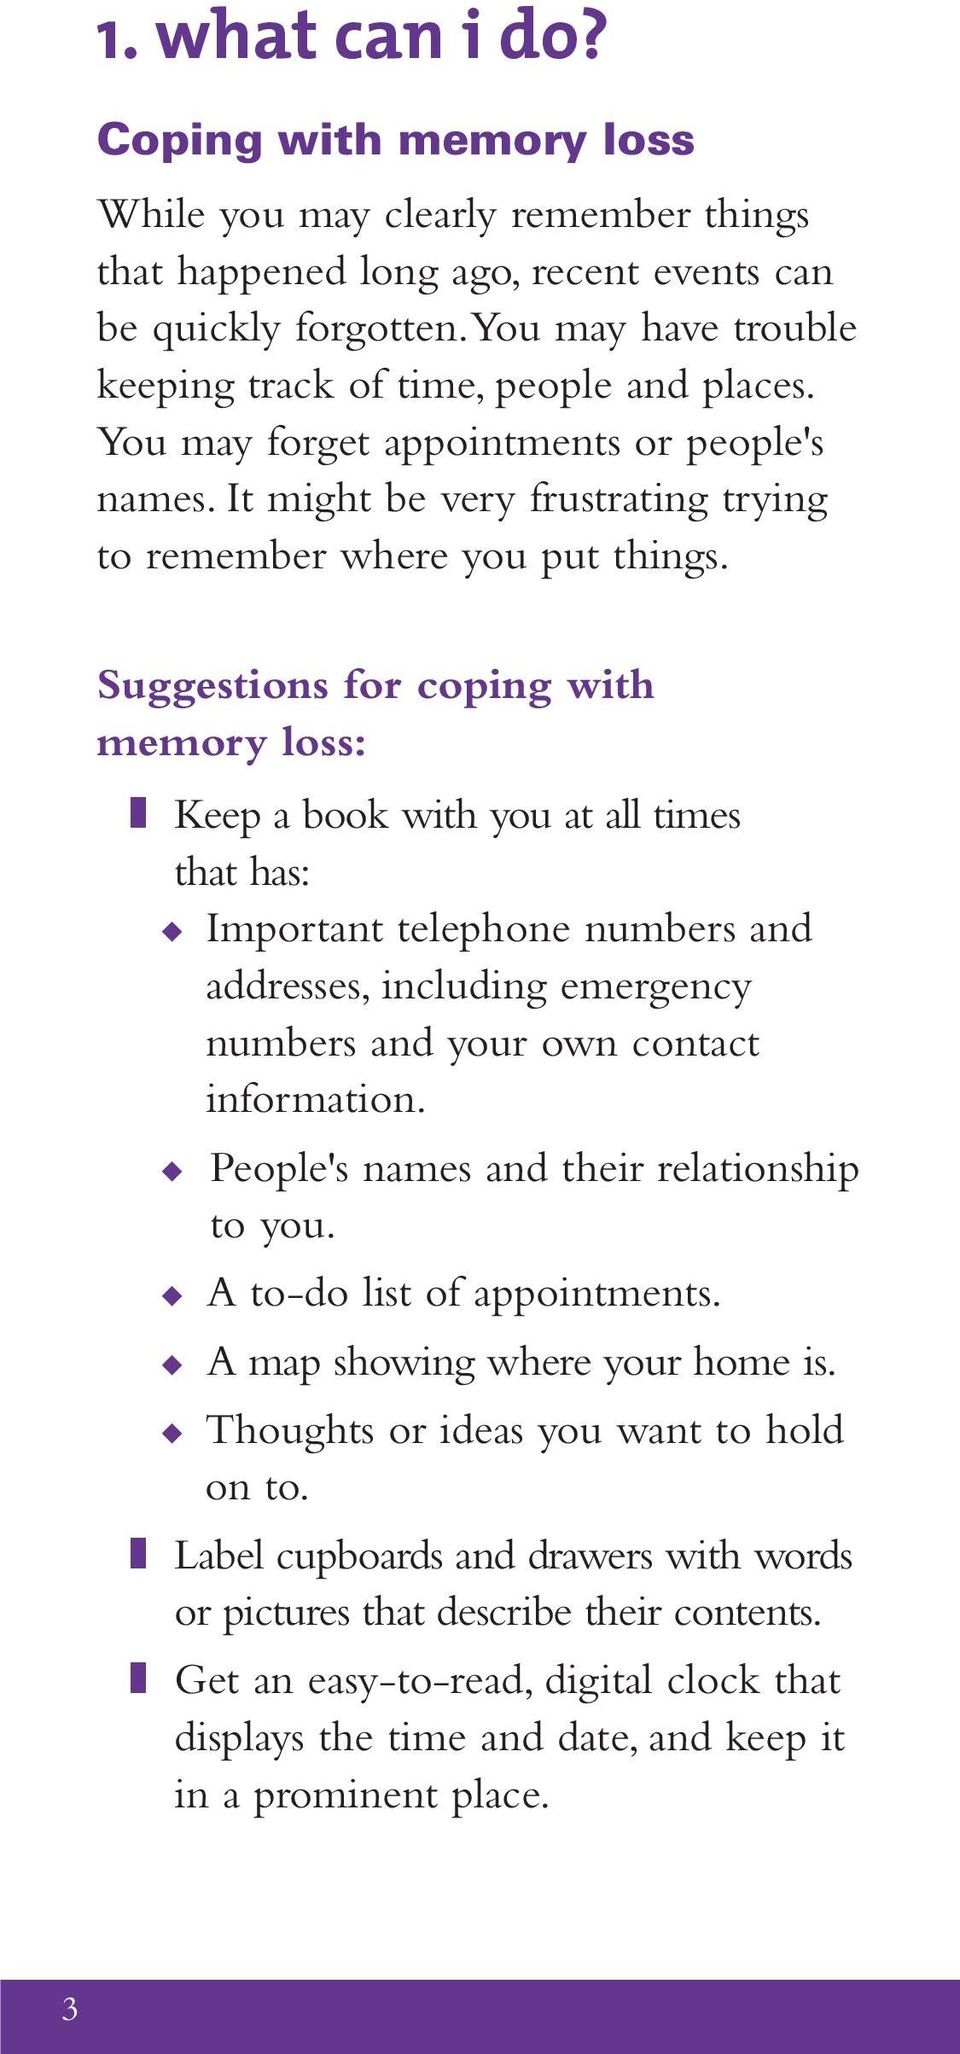 Suggestions for coping with memory loss: z Keep a book with you at all times that has: u Important telephone numbers and addresses, including emergency numbers and your own contact information.